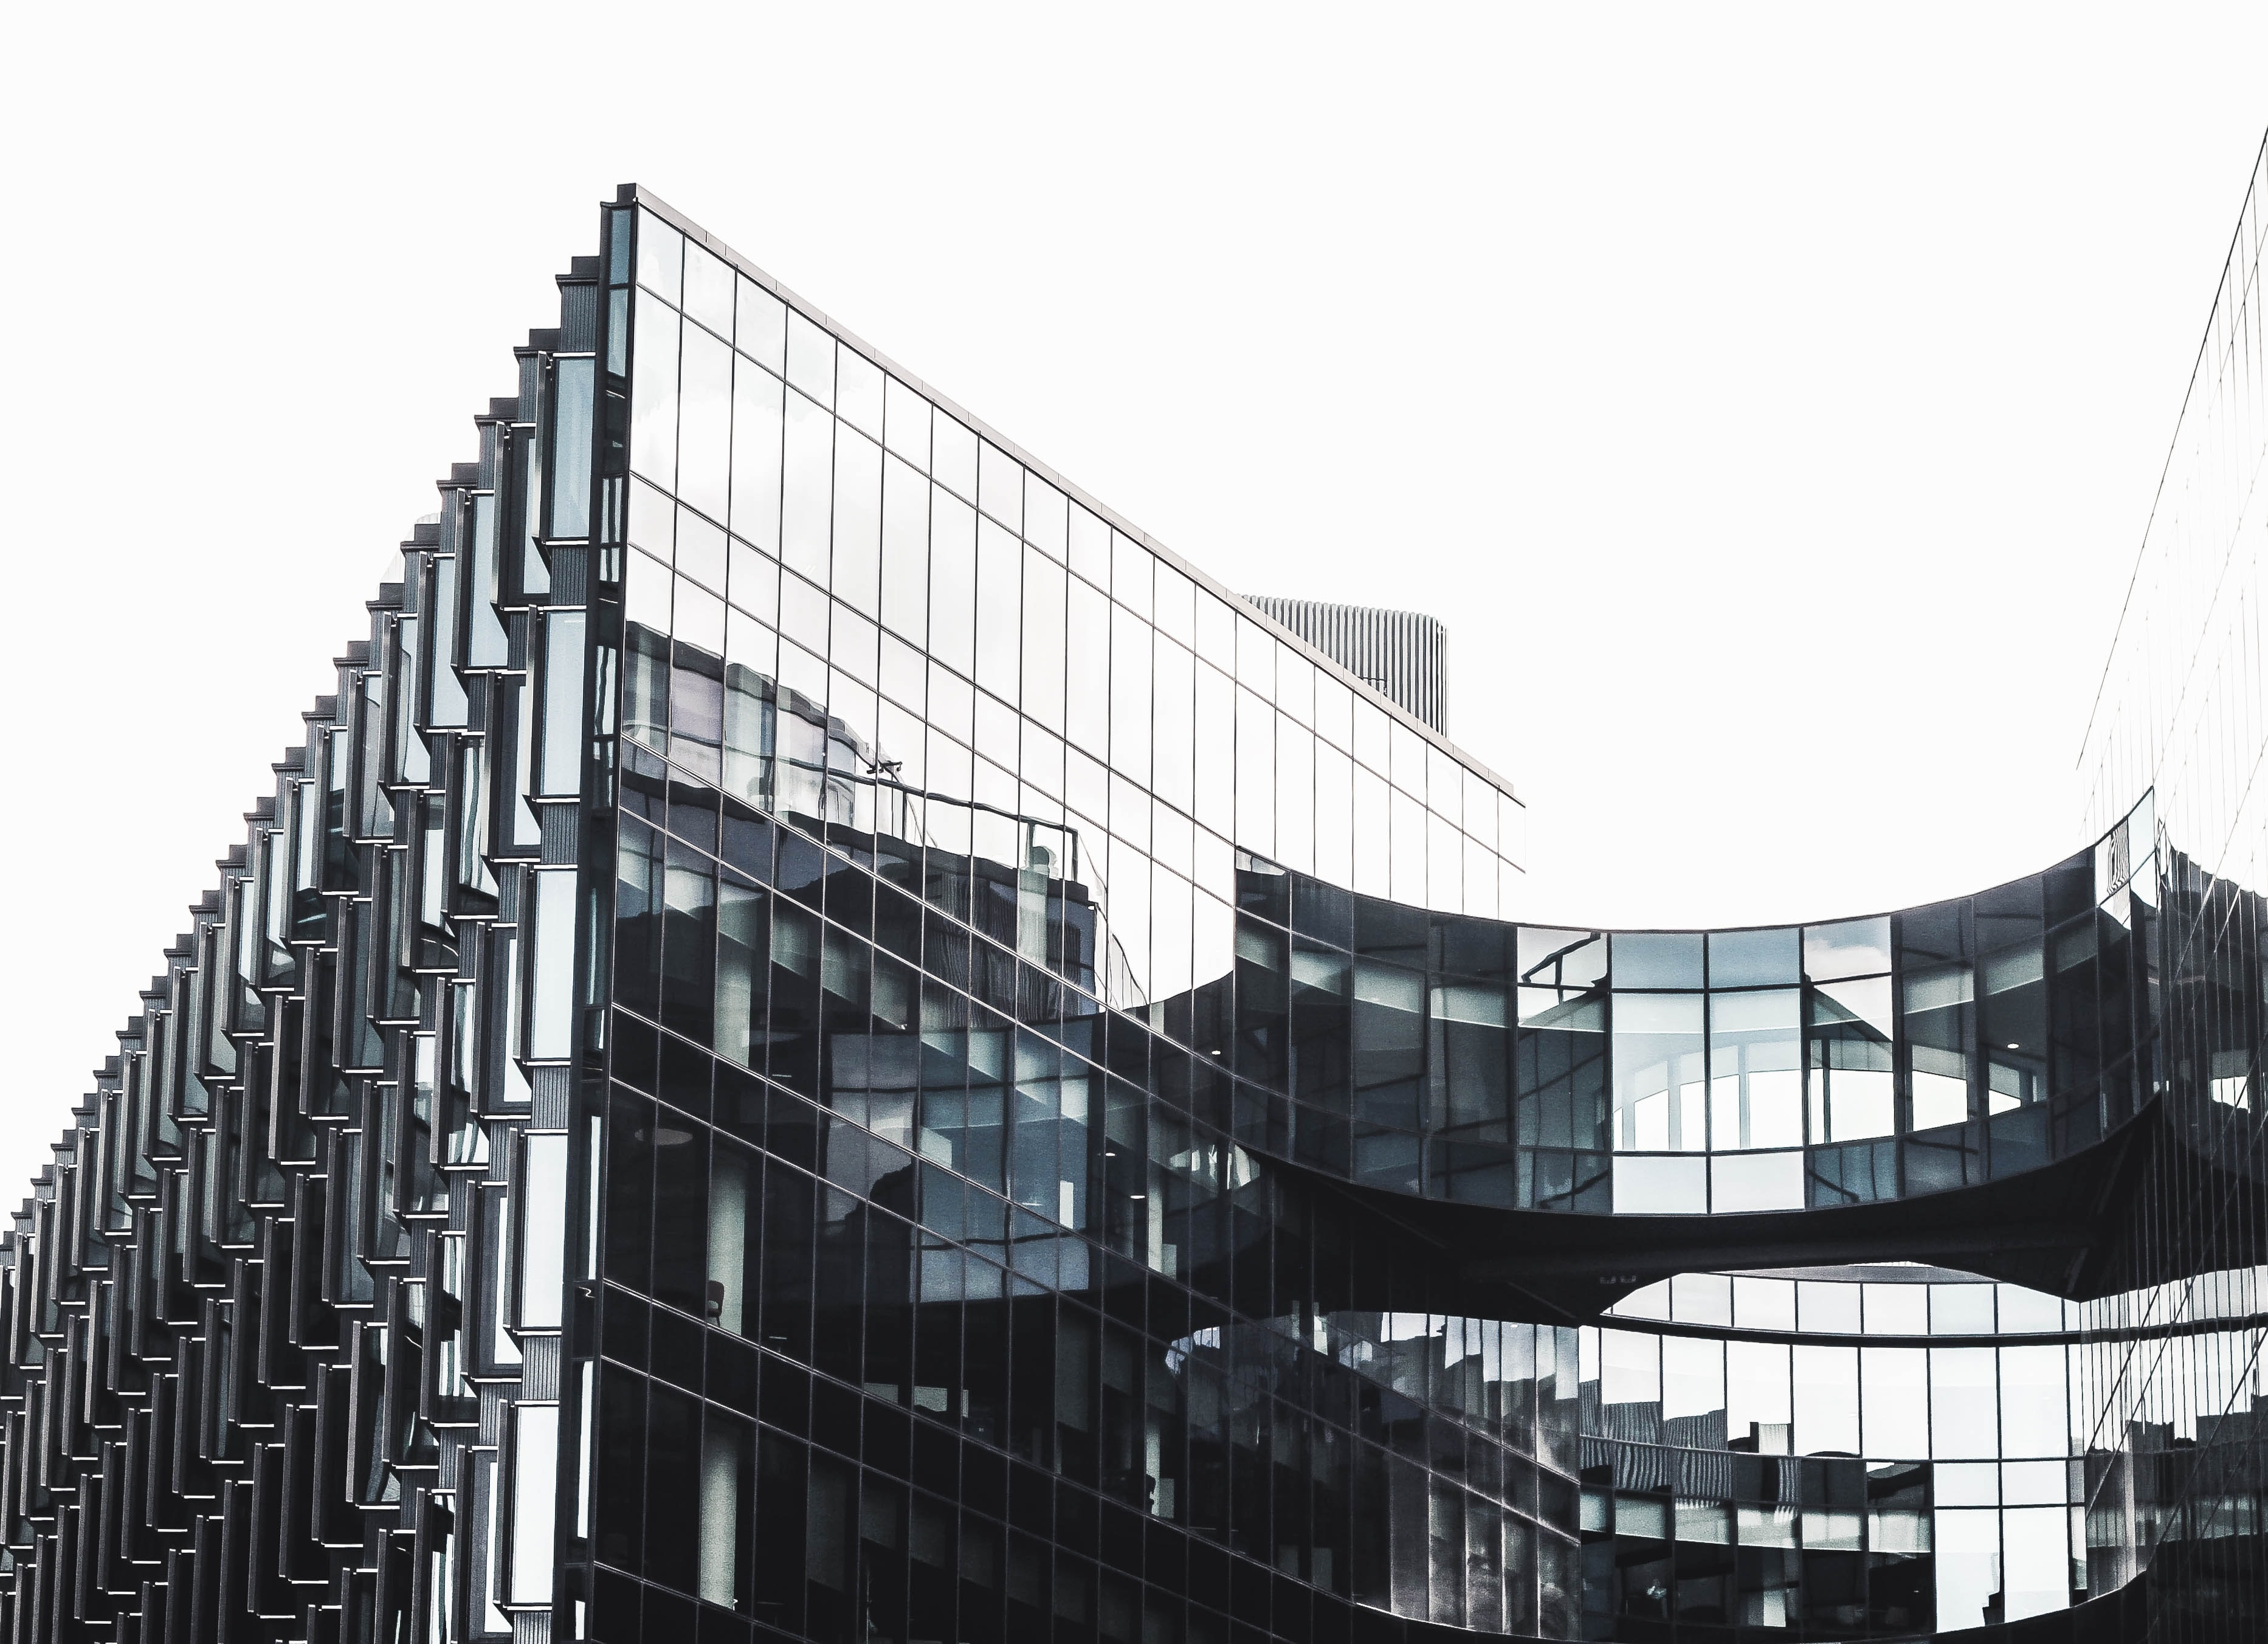 The glass facade of a modern office building in London